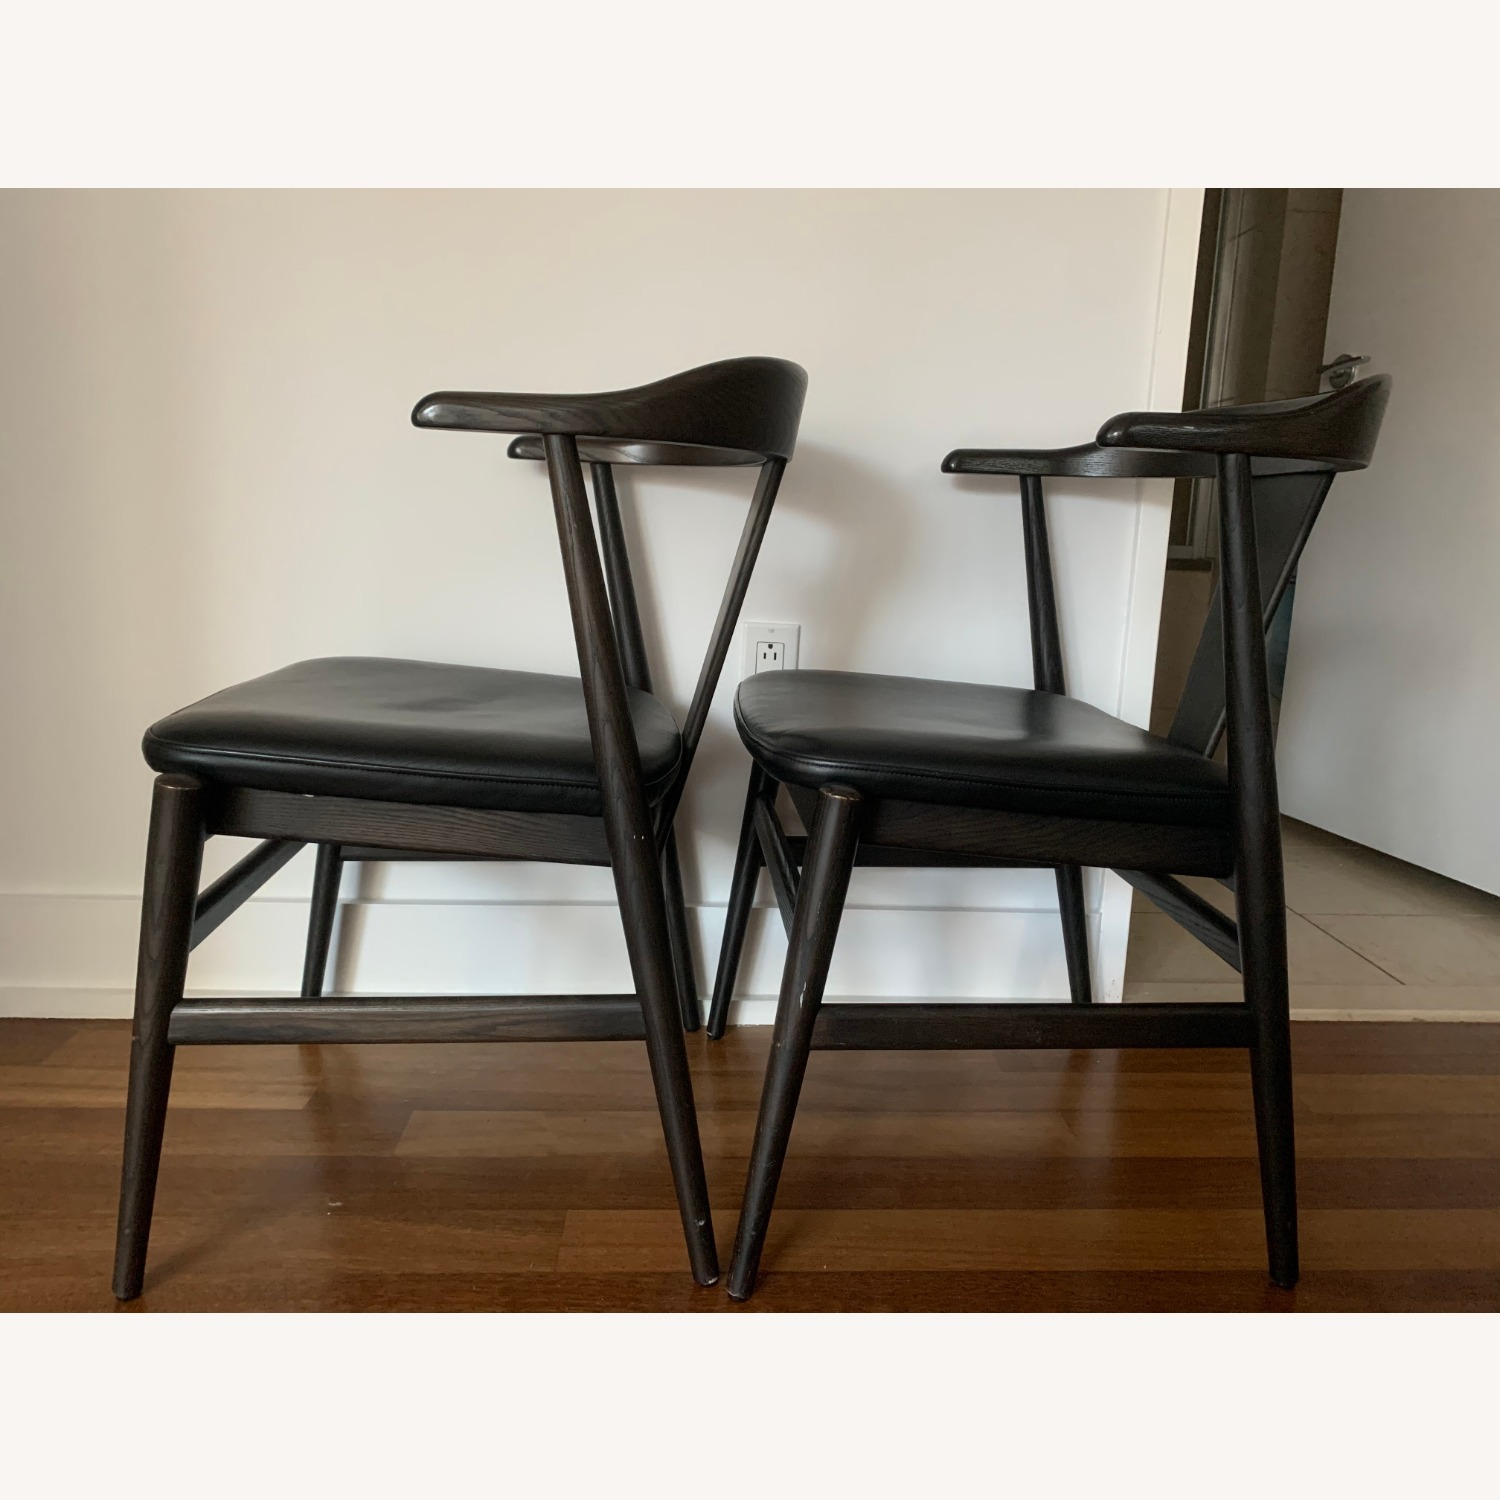 Room and Board Evans Chairs with Leather seats - image-5